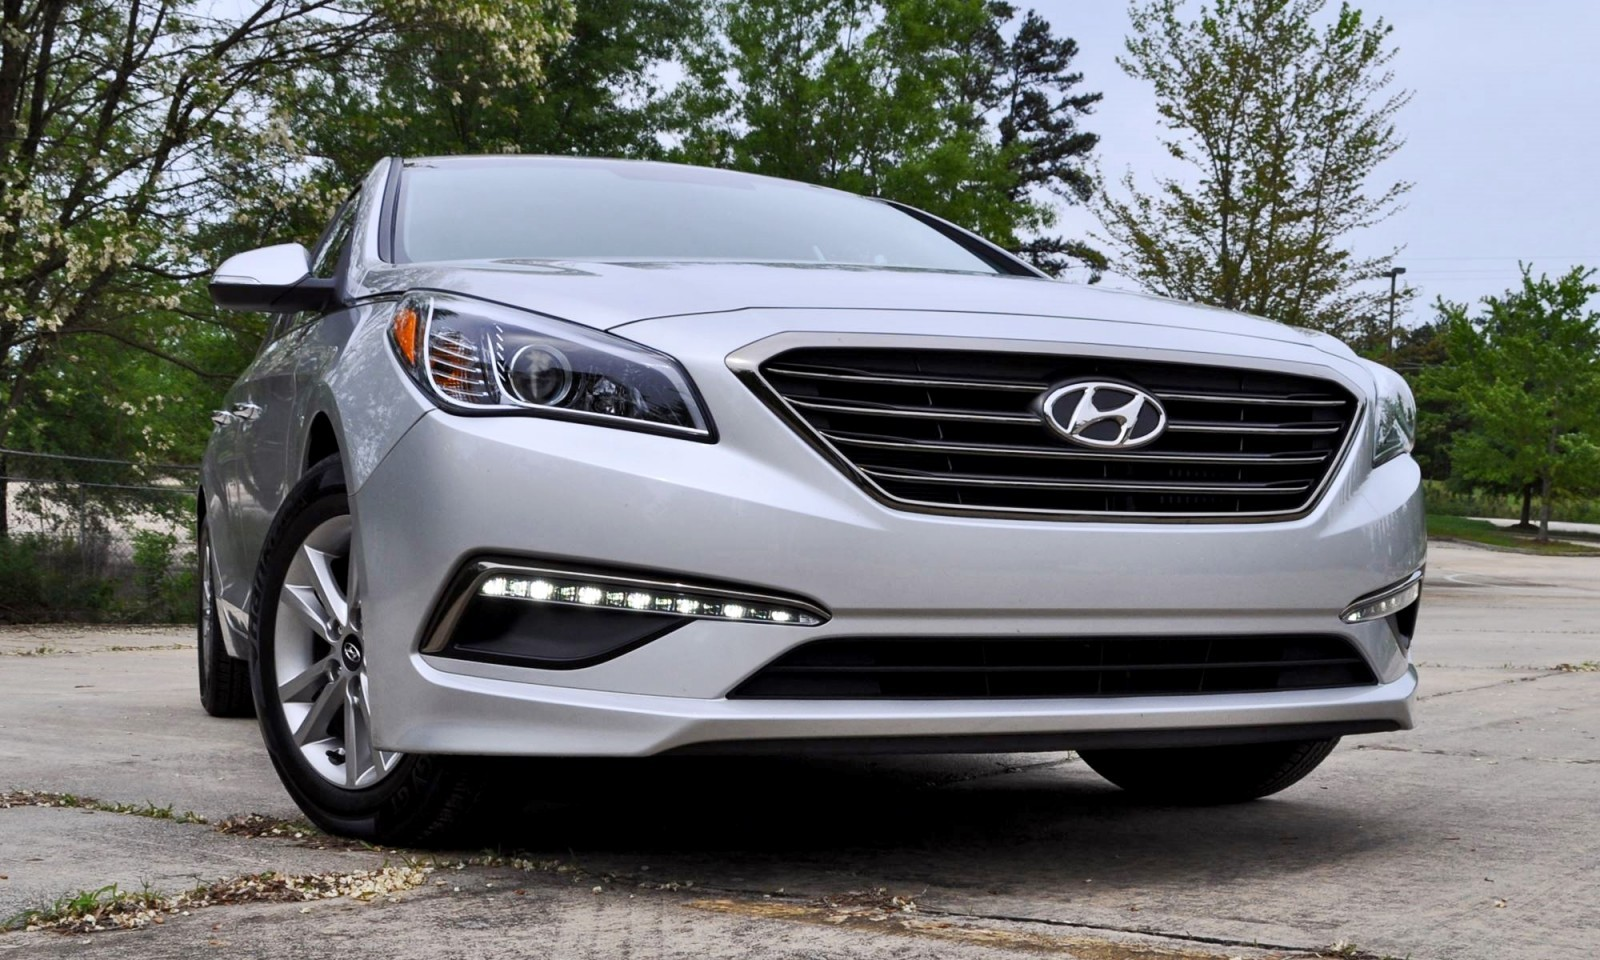 2015 hyundai sonata eco review 36 car revs. Black Bedroom Furniture Sets. Home Design Ideas